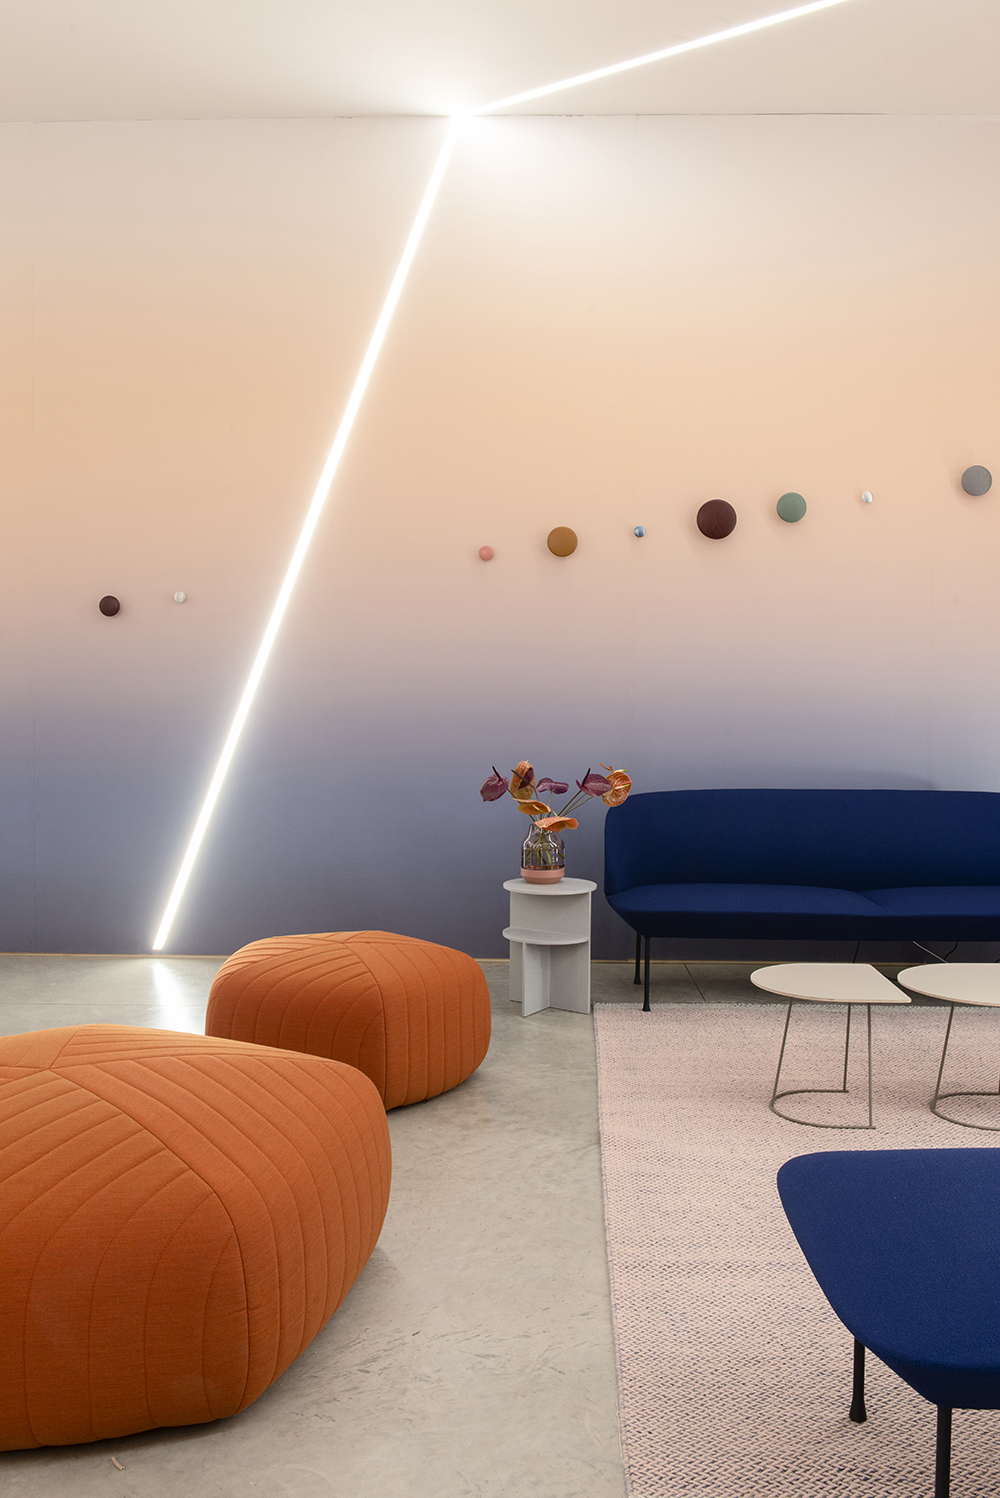 Photo of a room with a blue to peach gradient wall and orange and blue seating